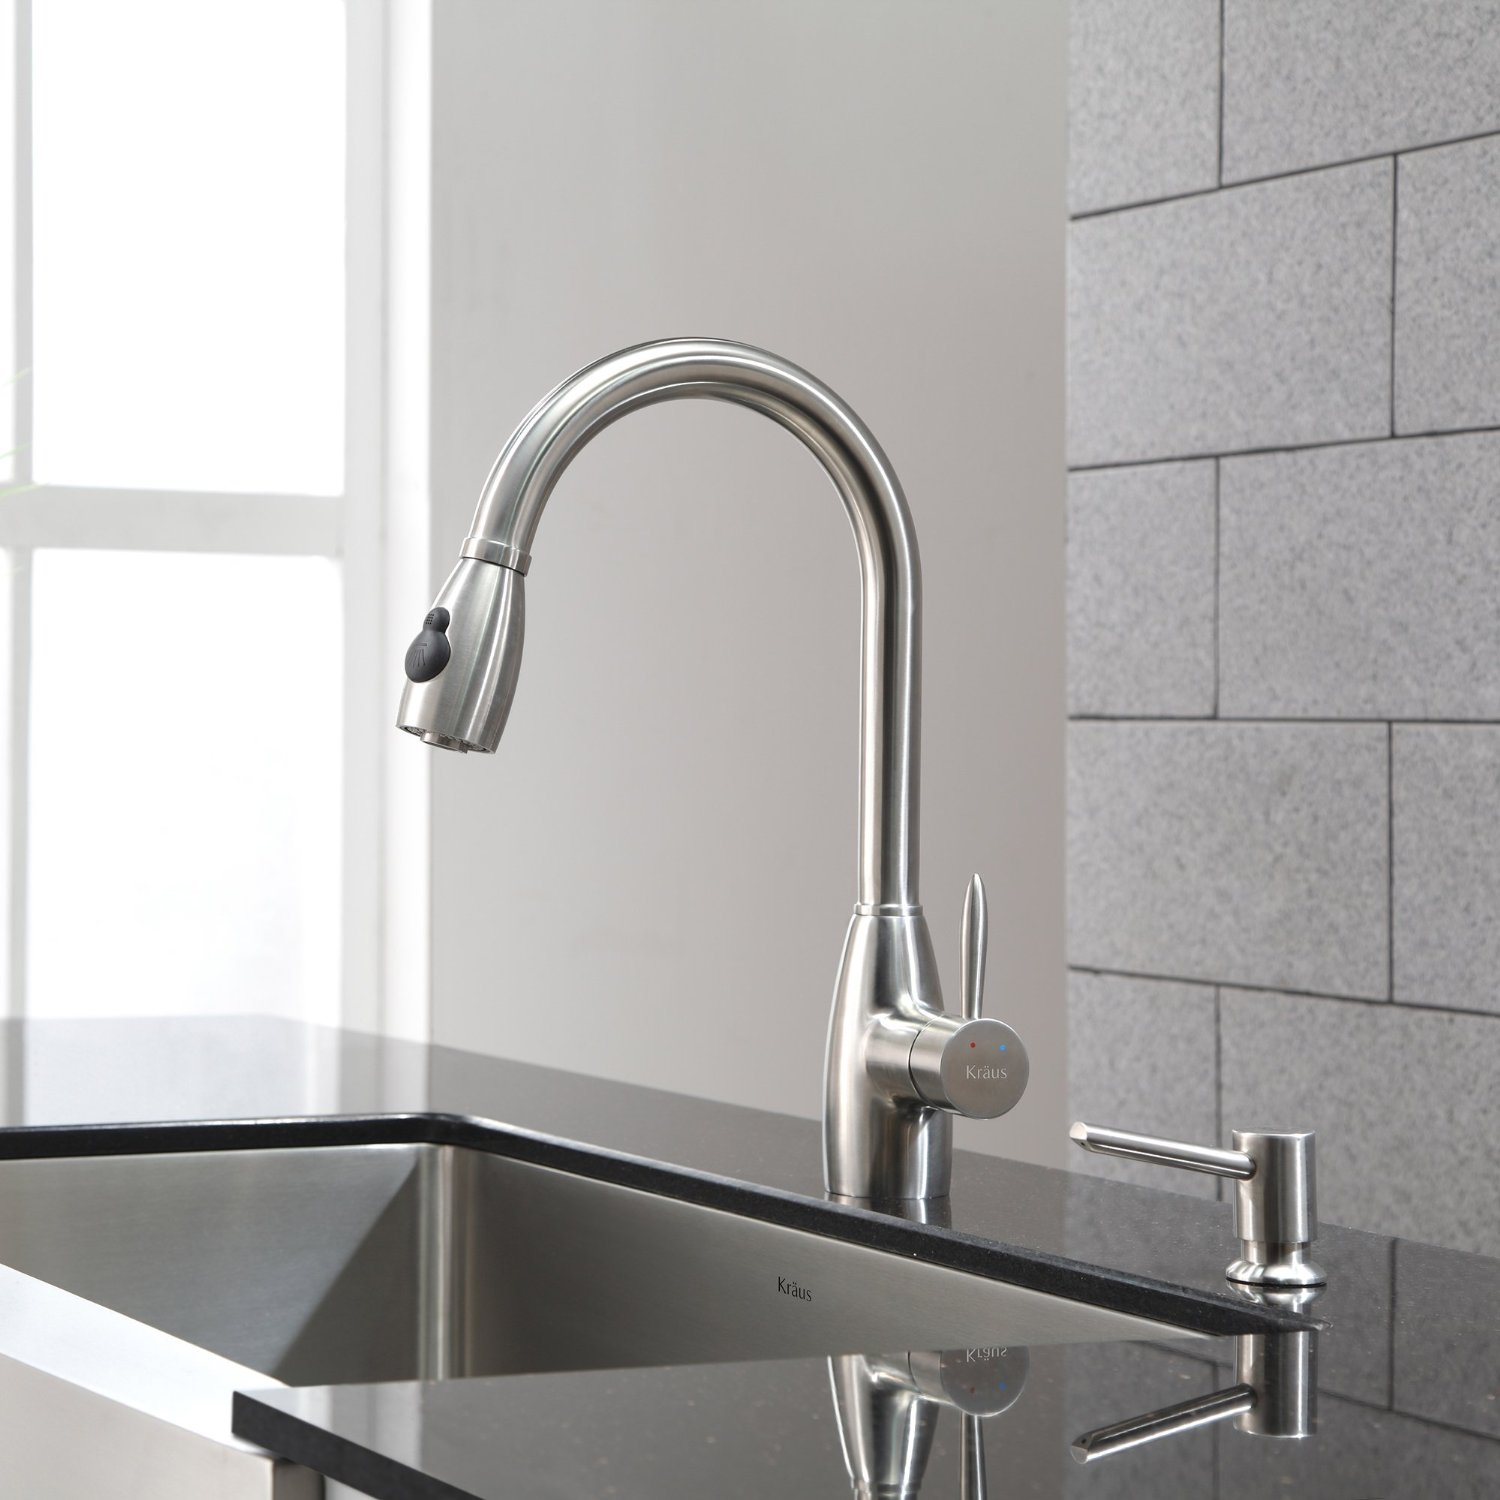 Delta Pull Down Kitchen Faucet Best Kitchen Faucets 2015 Reviews Top Rated Pull Down Out